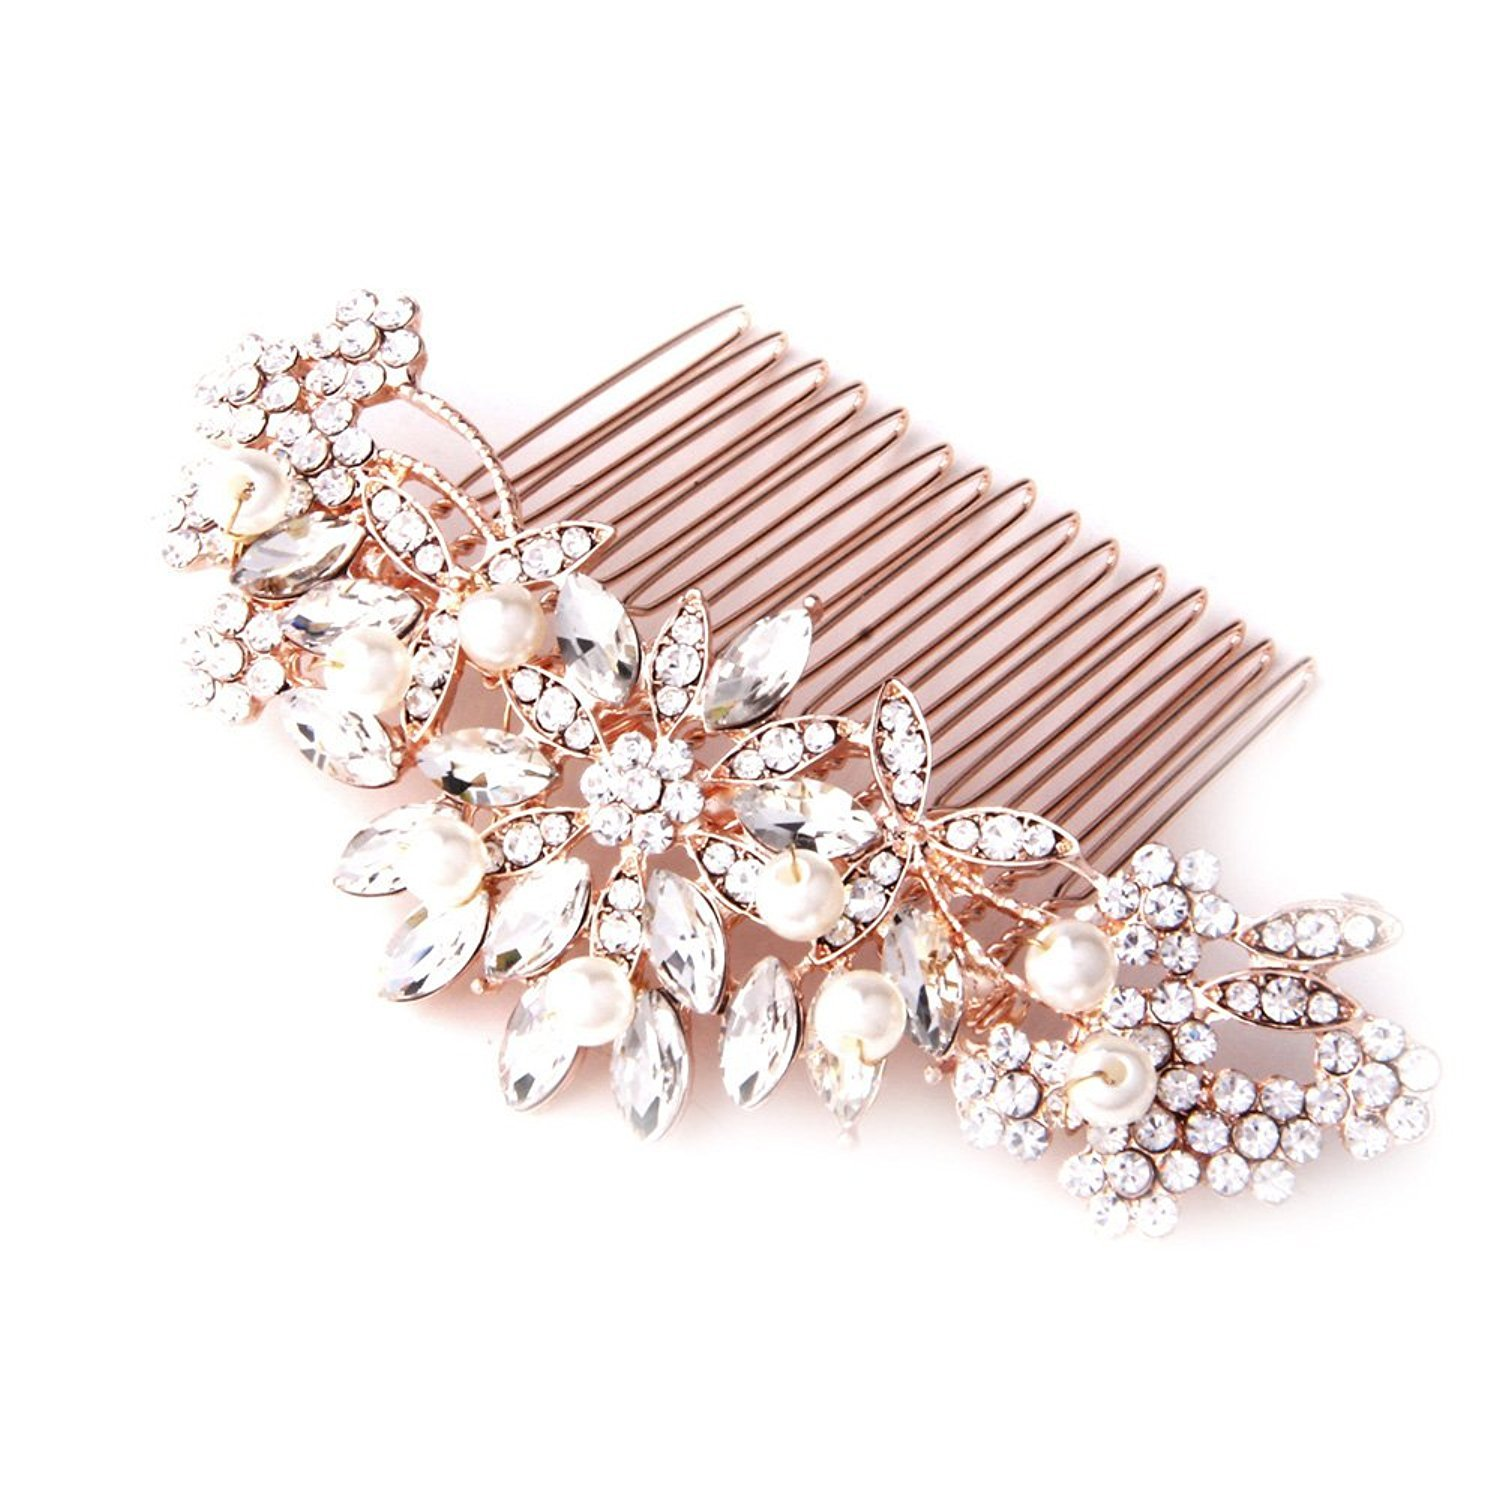 Fairy Moda Vintage Pearl Crystal Bridal Hair Accessories Rose Gold Hair Comb for Brides Wedding by Fairy Moda